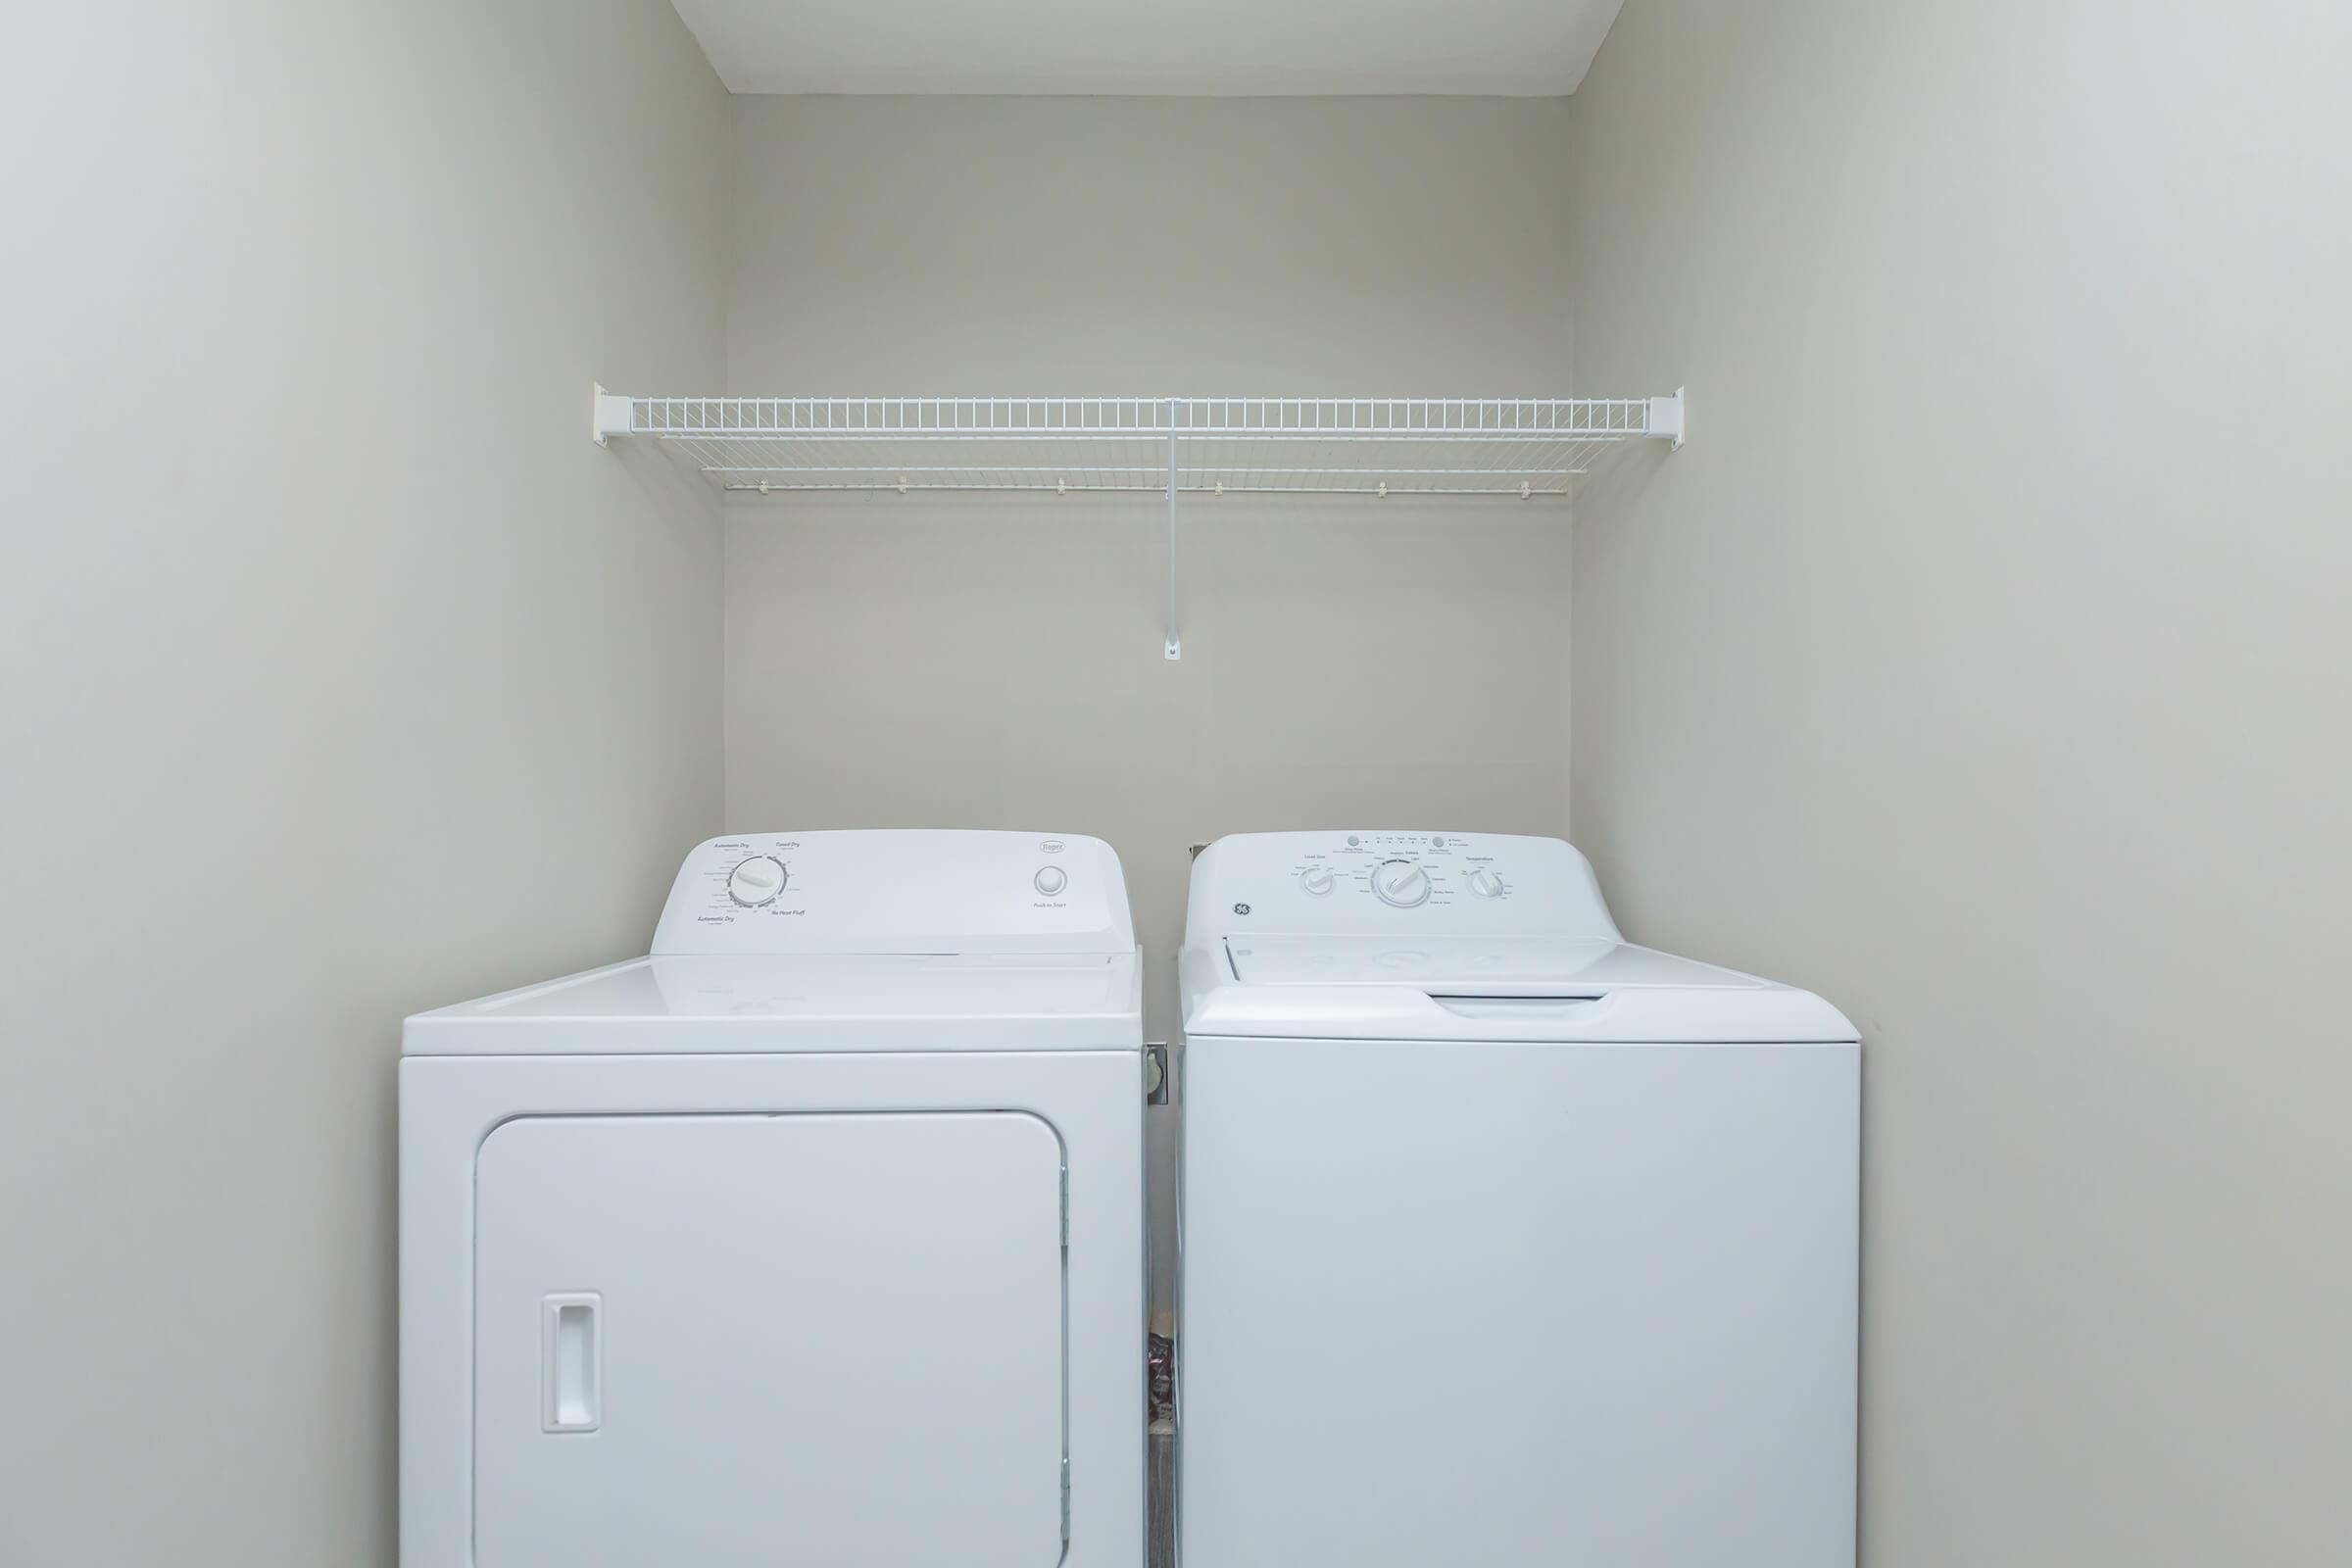 Washer and Dryer in Home at SummerTrees Apartments